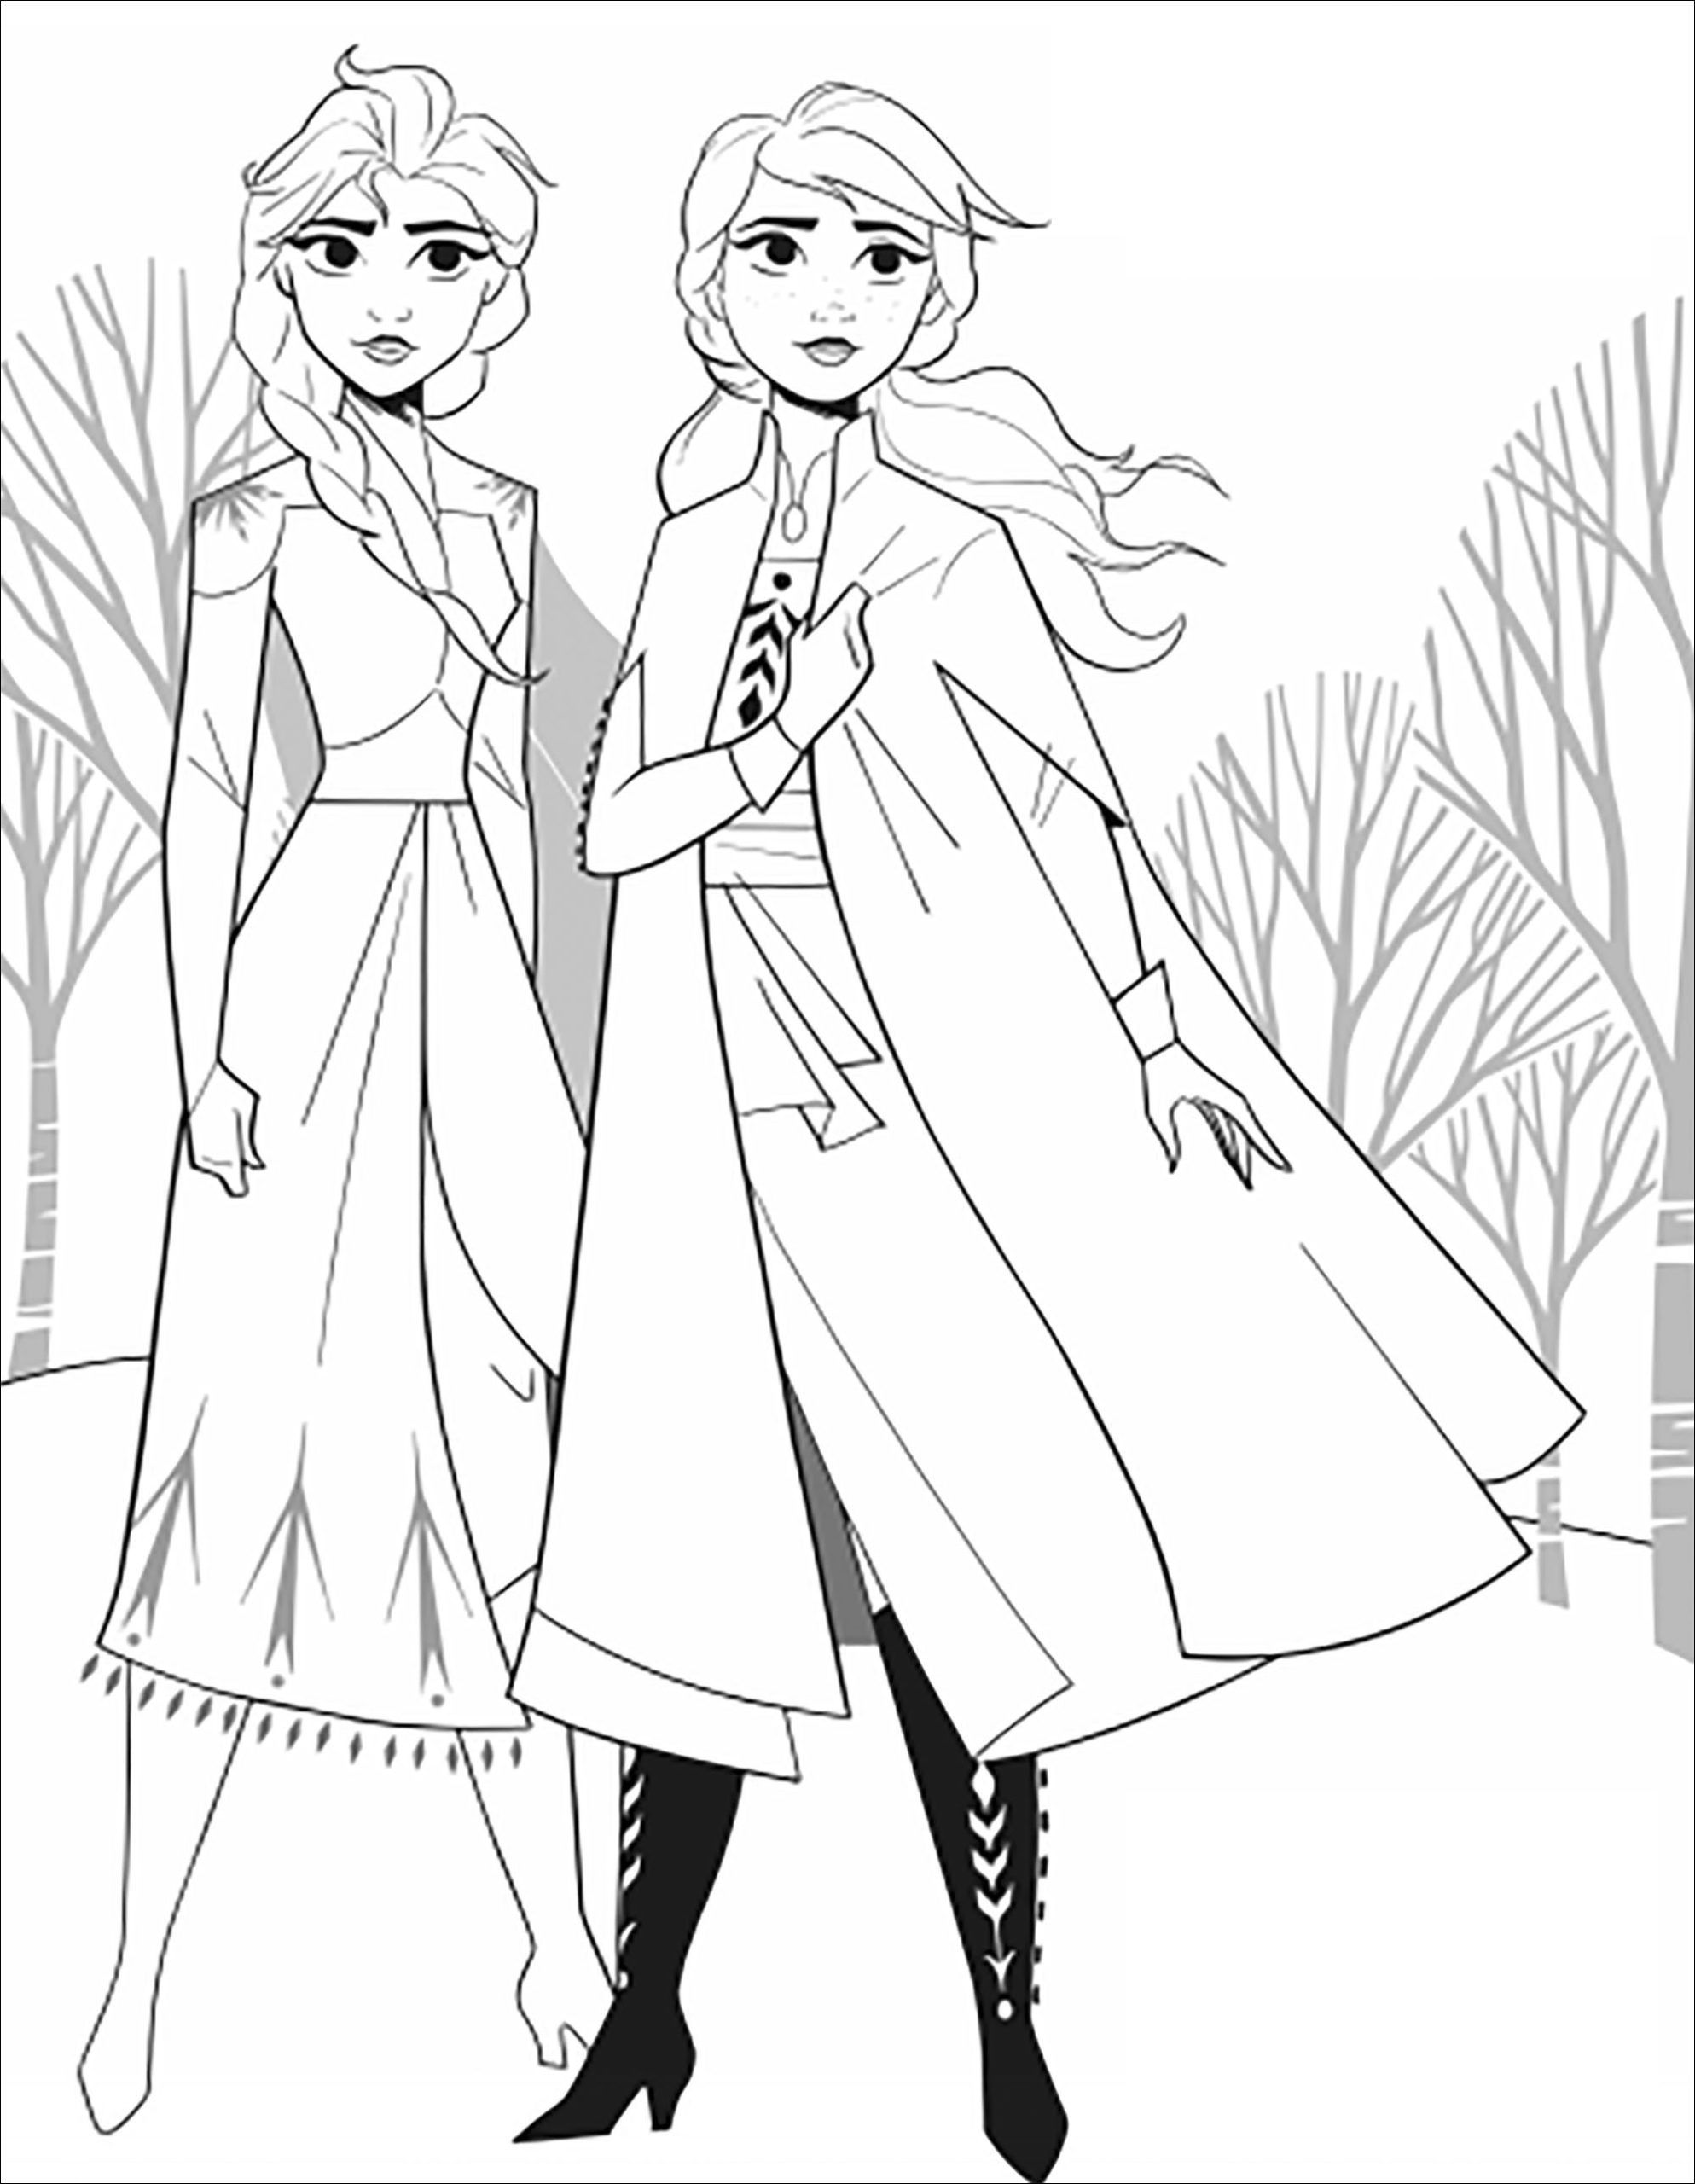 Free Printable Disney Coloring Pages And Games From 40 Disney Movies In 2021 Disney Princess Coloring Pages Frozen Coloring Pages Elsa Coloring Pages